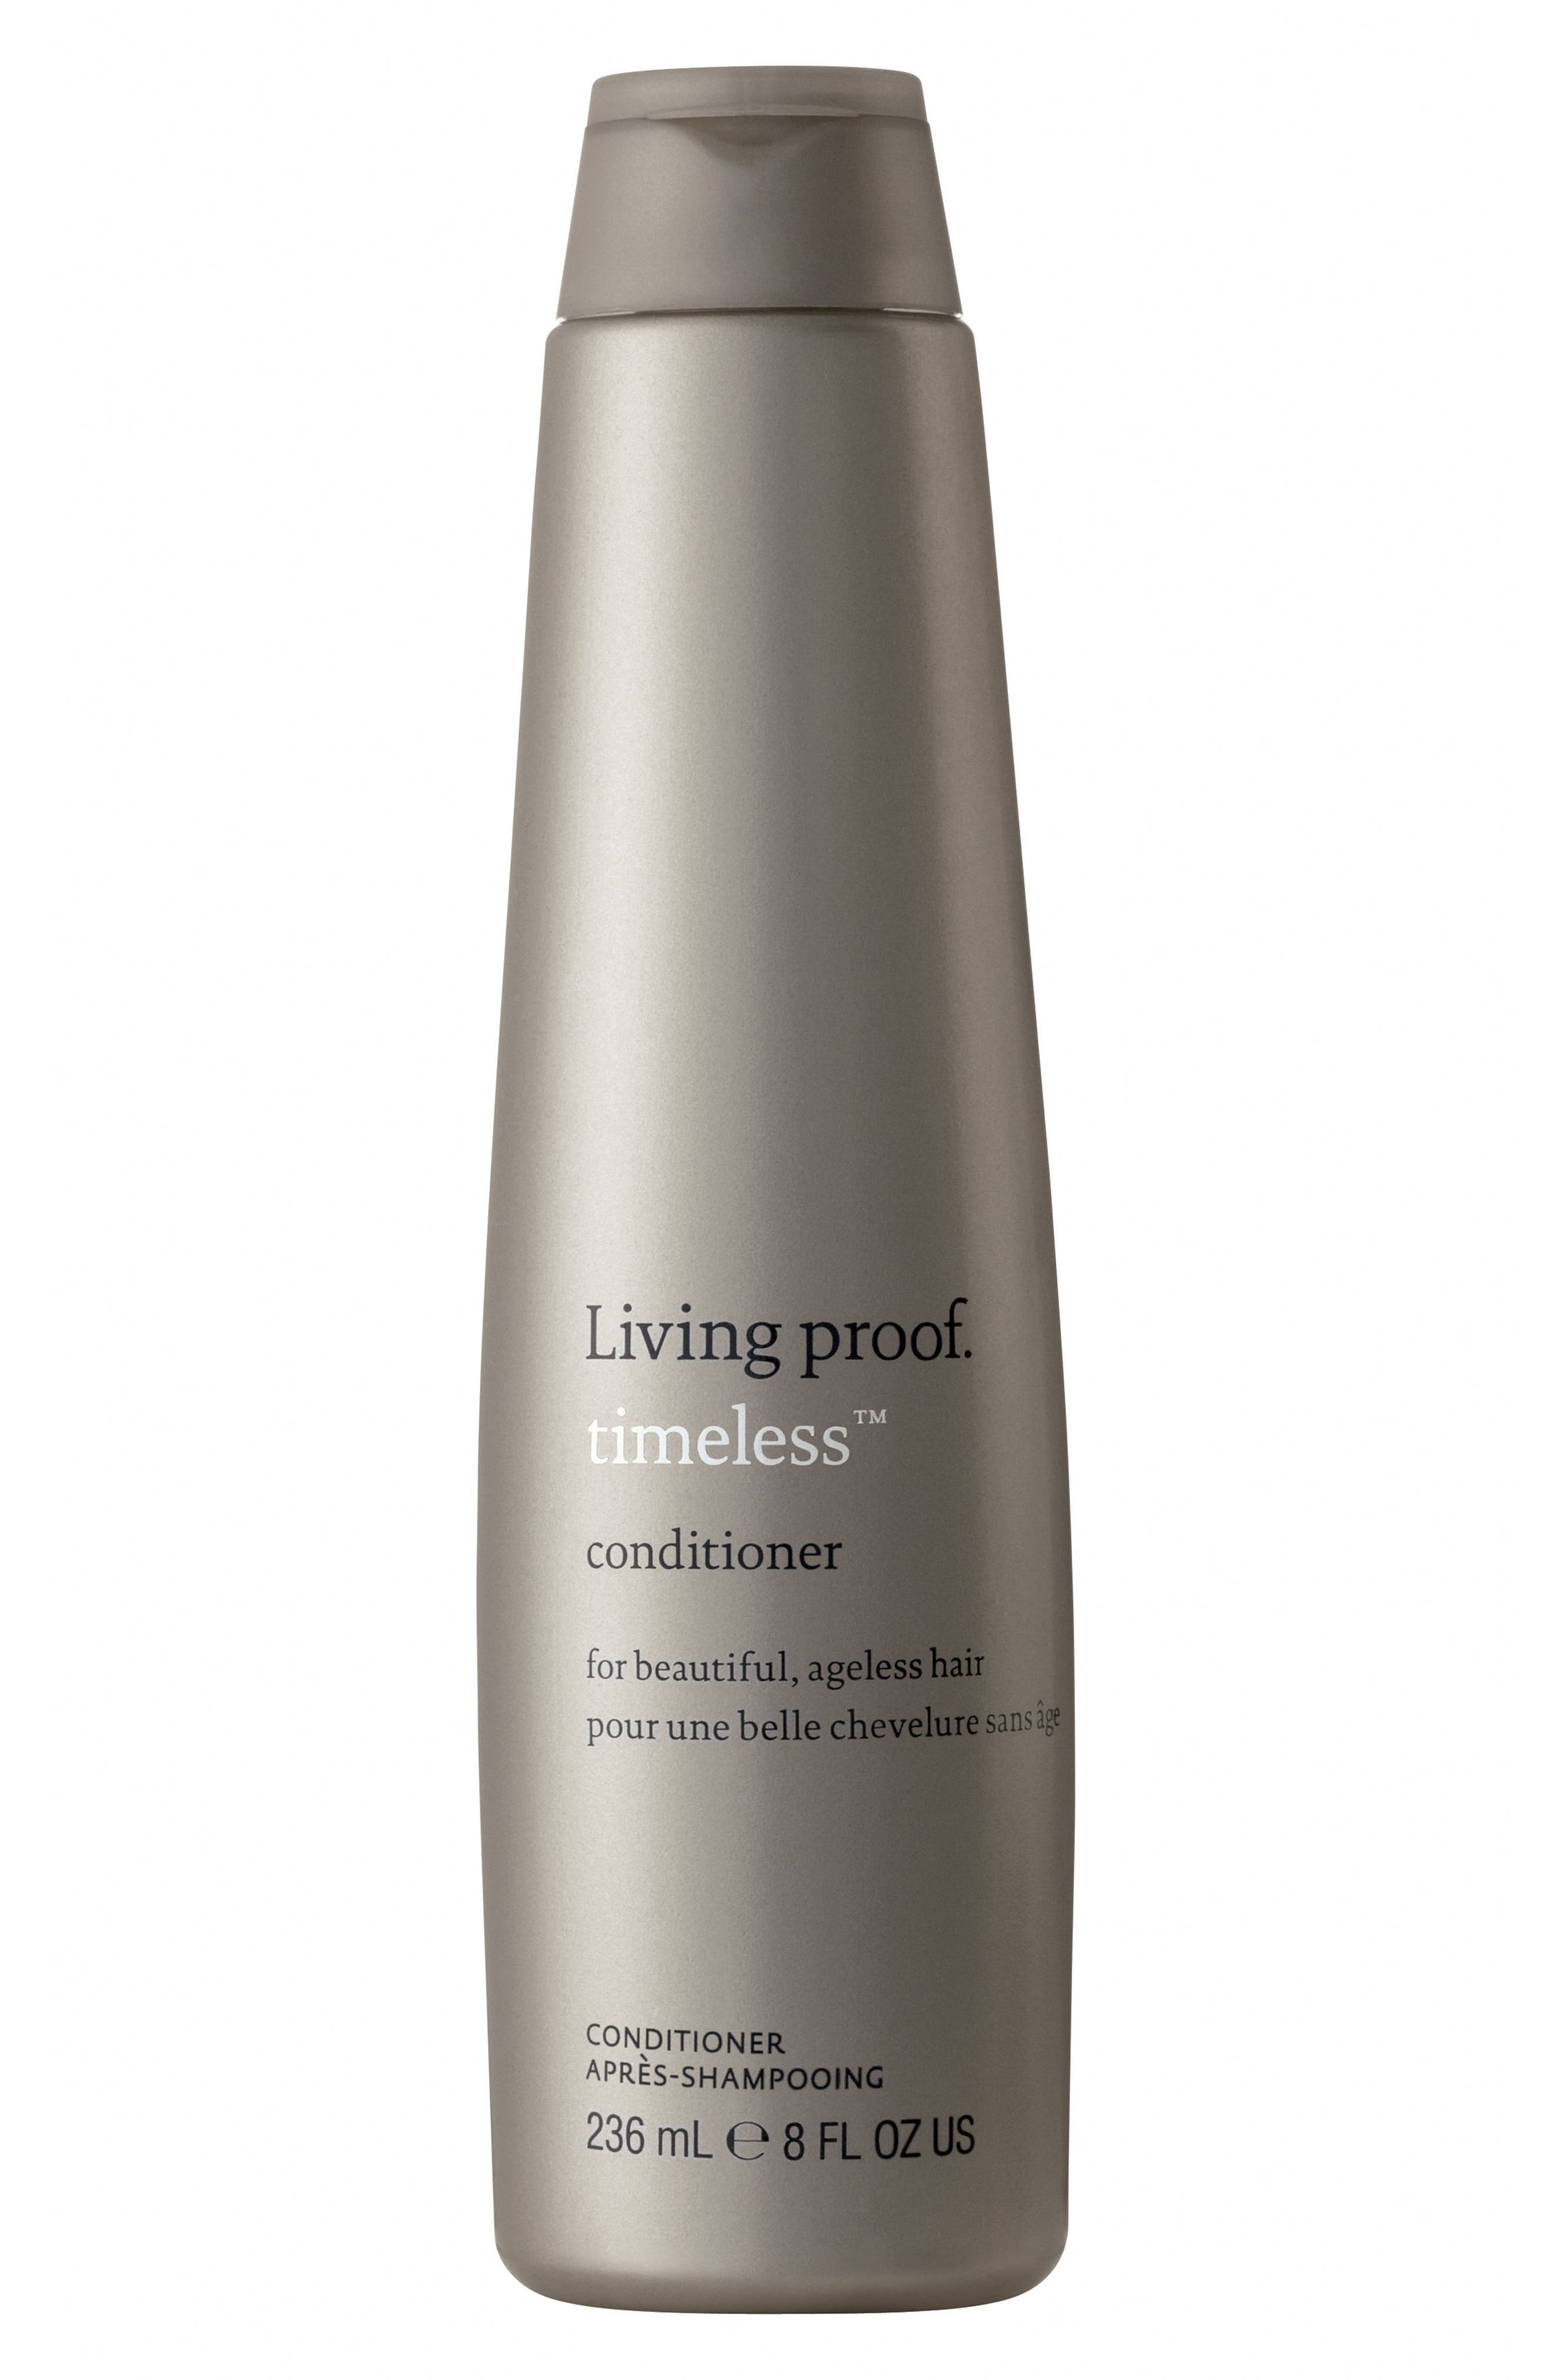 Living proof® Timeless Conditioner